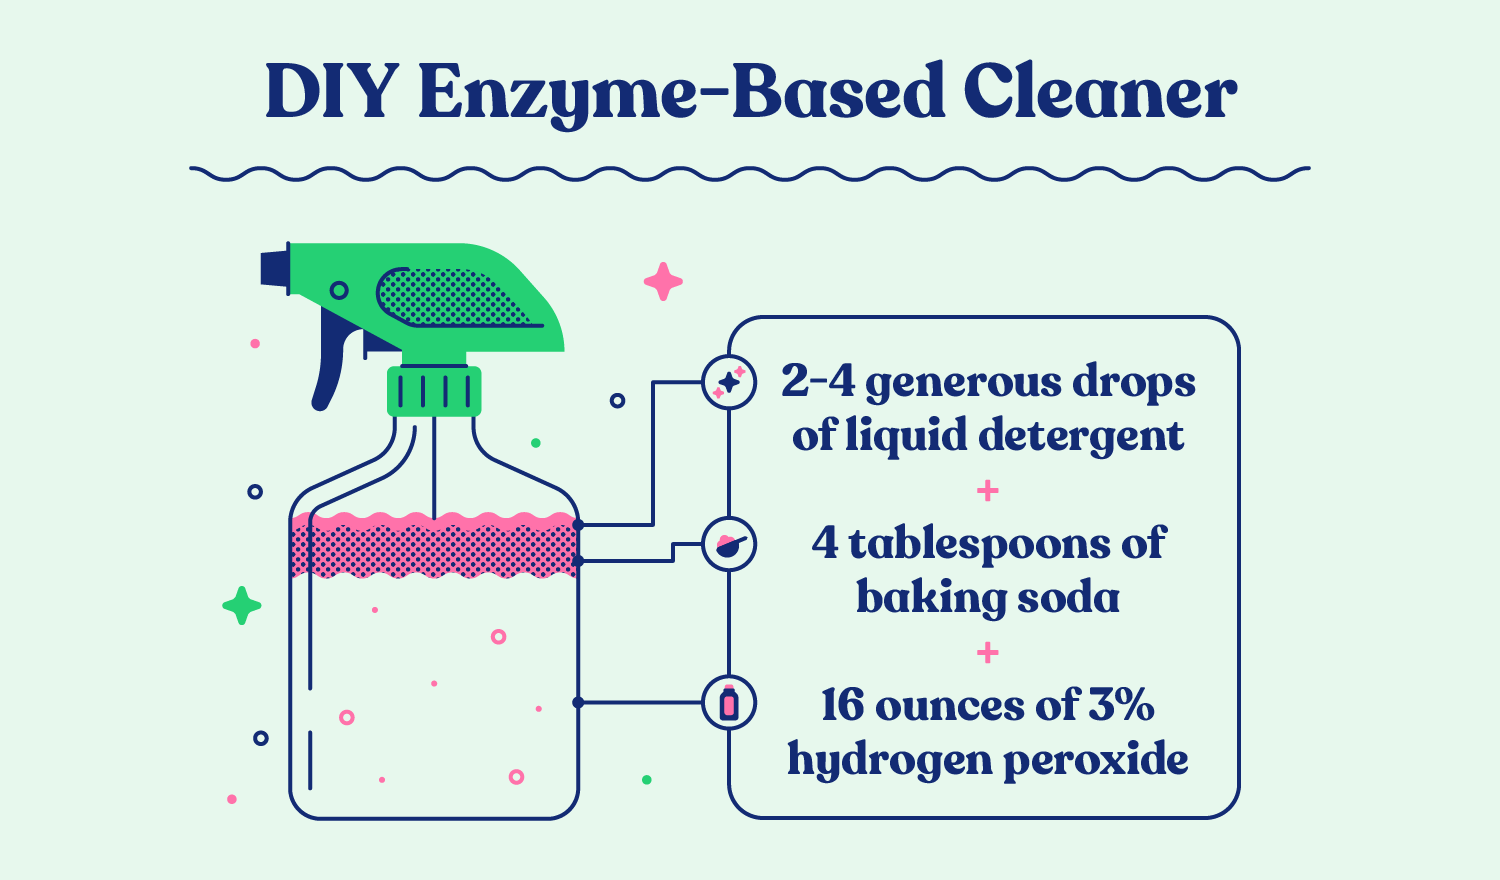 How to make a DIY enzyme-based cleaner